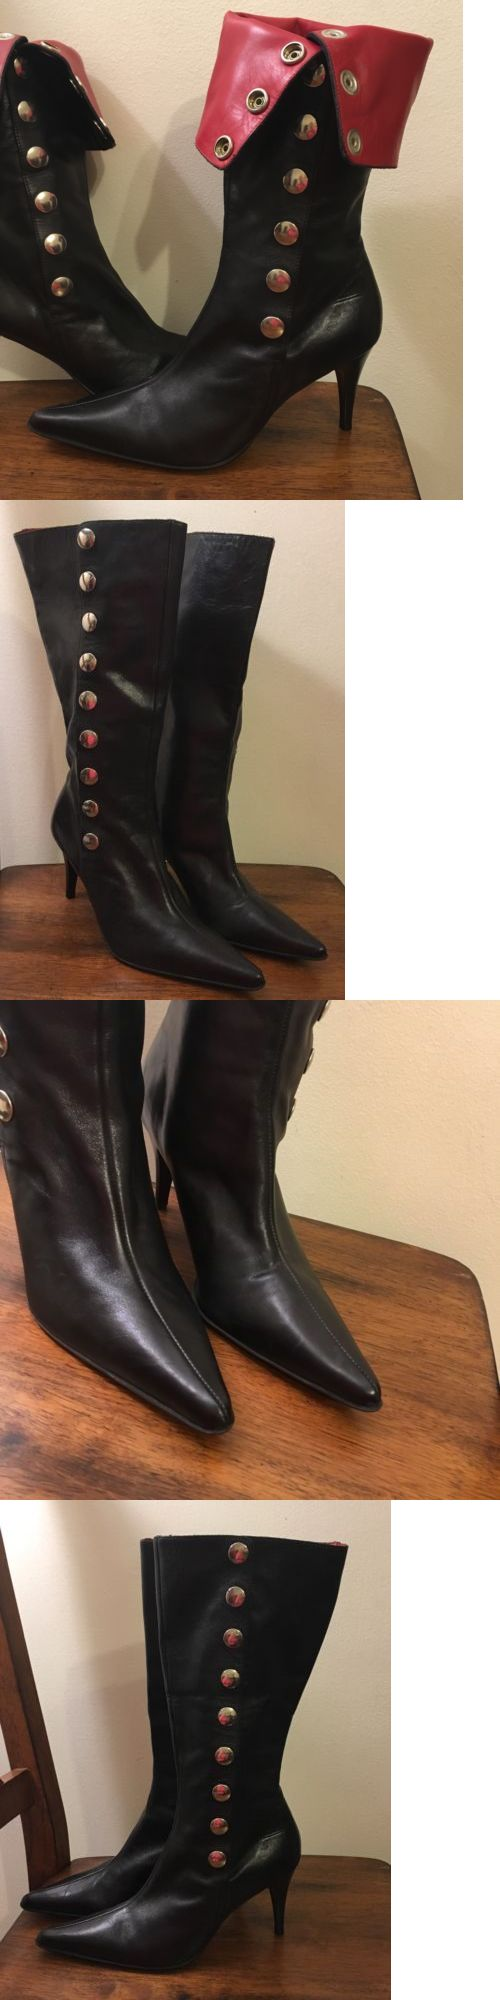 clothing and accessories: Women S Lady Shoes Black Leather Boots Made In Italy Size 6.5 -> BUY IT NOW ONLY: $35.98 on eBay!